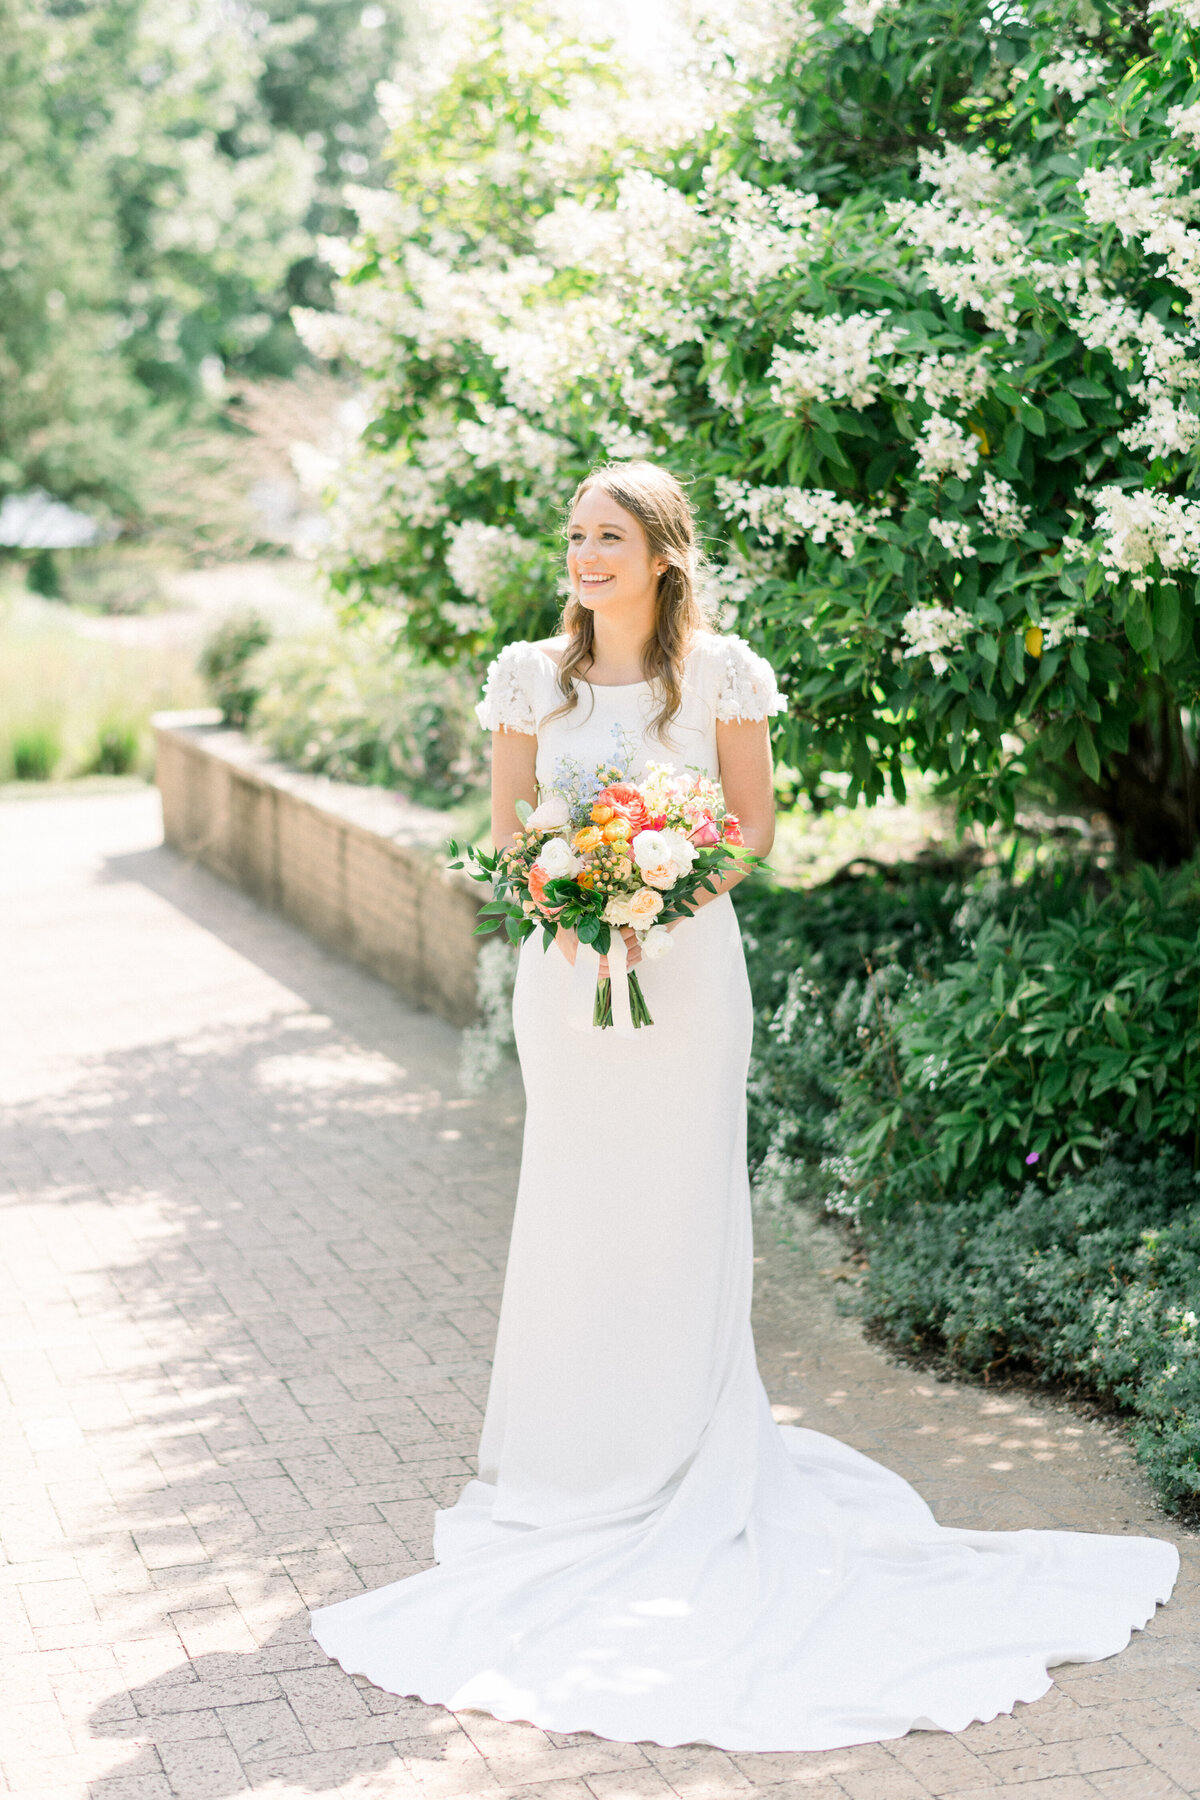 Minnesota Bride, Minnesota wedding photographer, Minneapolis wedding photographer, Wedding Dress, trish Allison photography, trish allison photography weddings, Light and airy photographer, MN wedding photographer